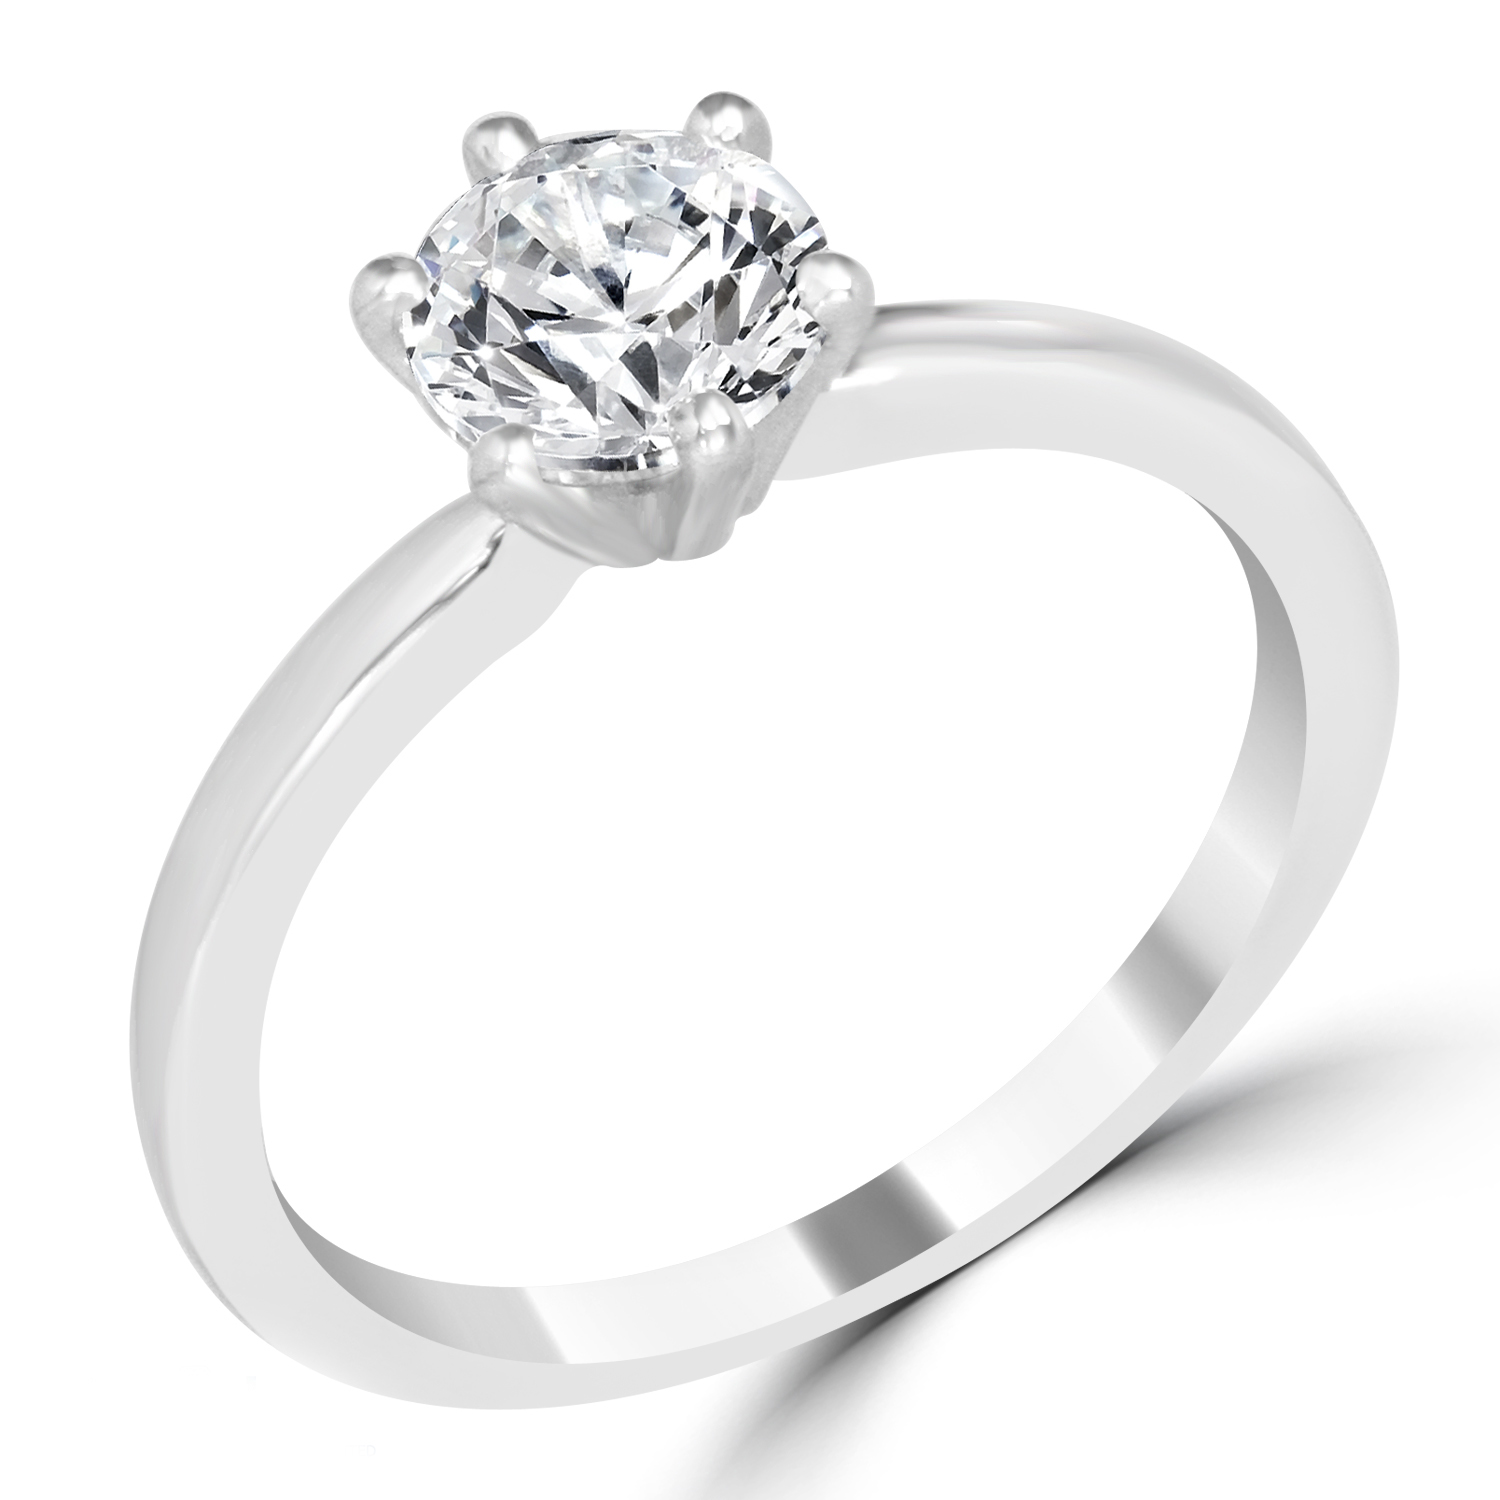 ct round cut si1 d solitaire diamond engagement ring. Black Bedroom Furniture Sets. Home Design Ideas